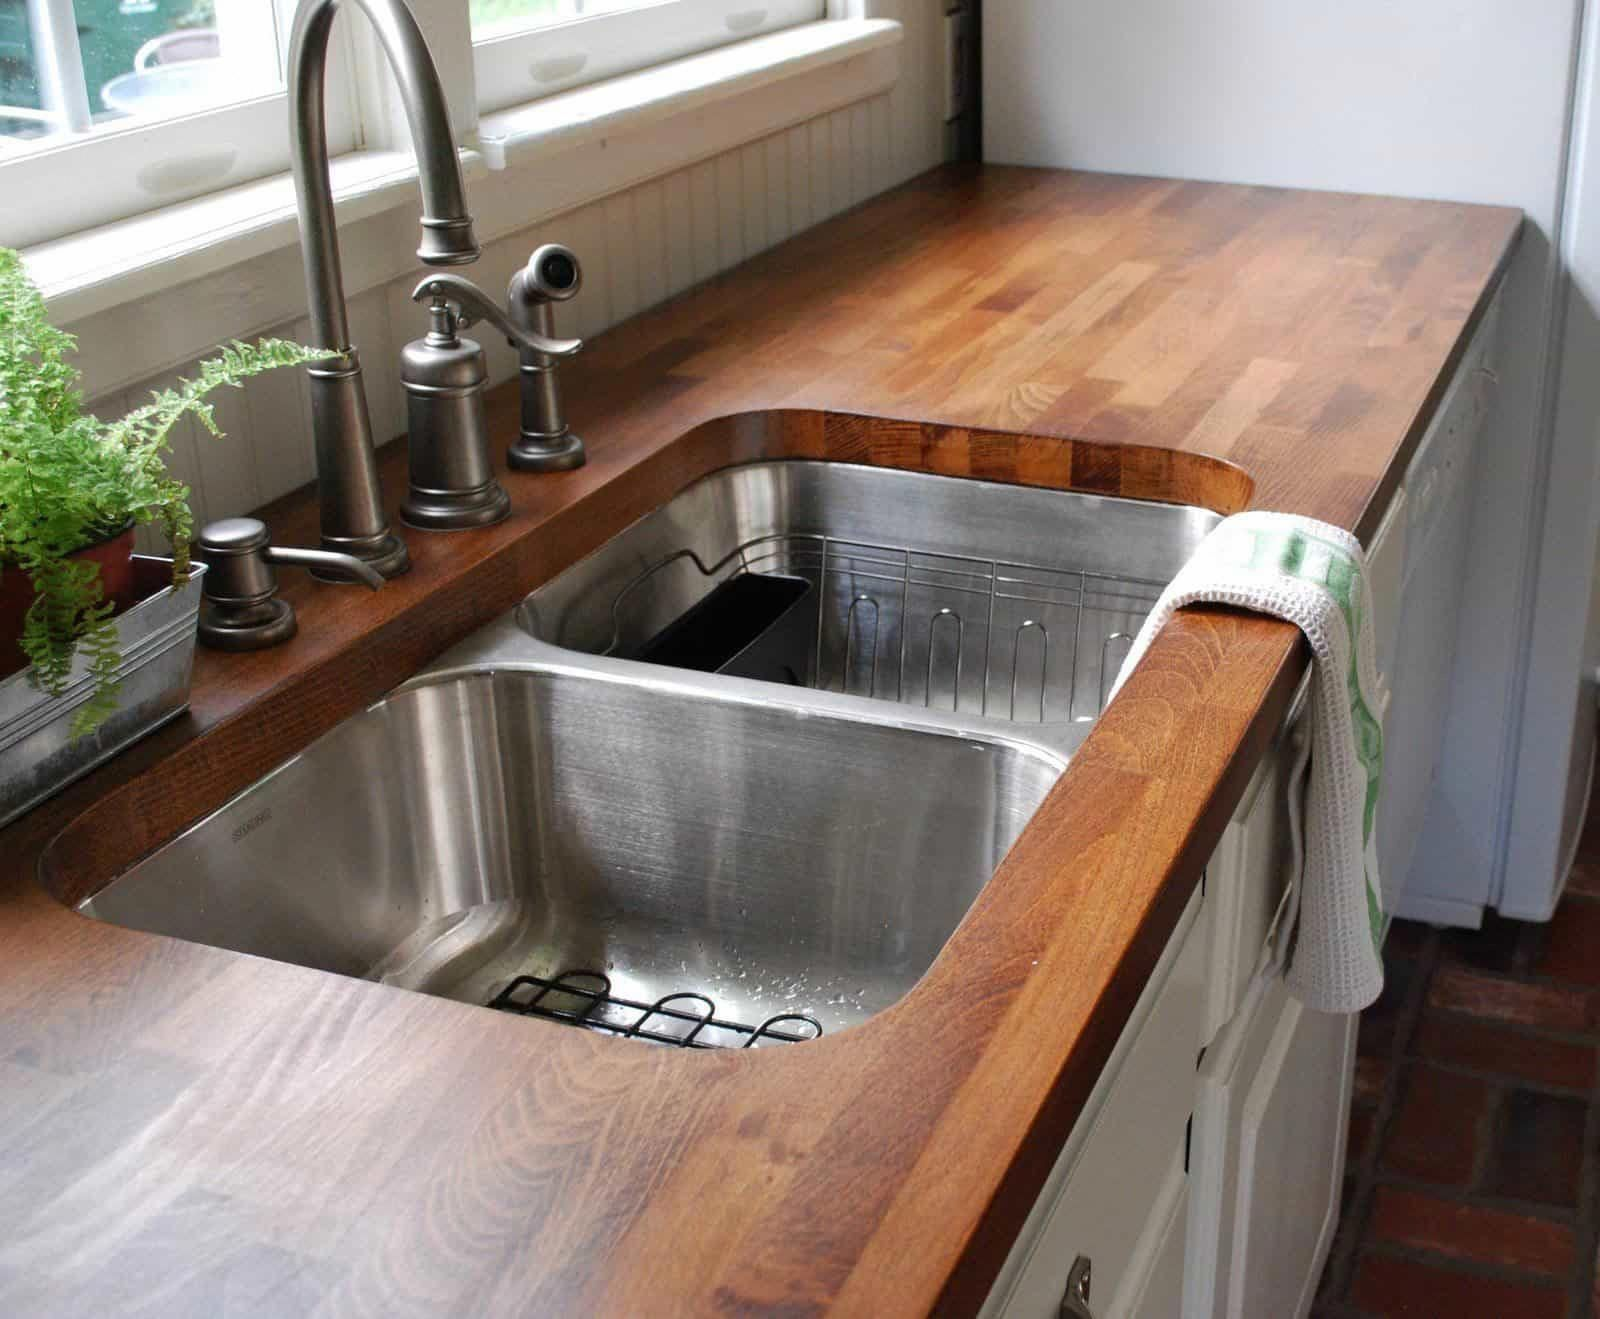 Pros And Cons Of Kitchen Butcher Block Countertops | Kitchen countertops laminate, Outdoor kitchen countertops, Diy wood countertops